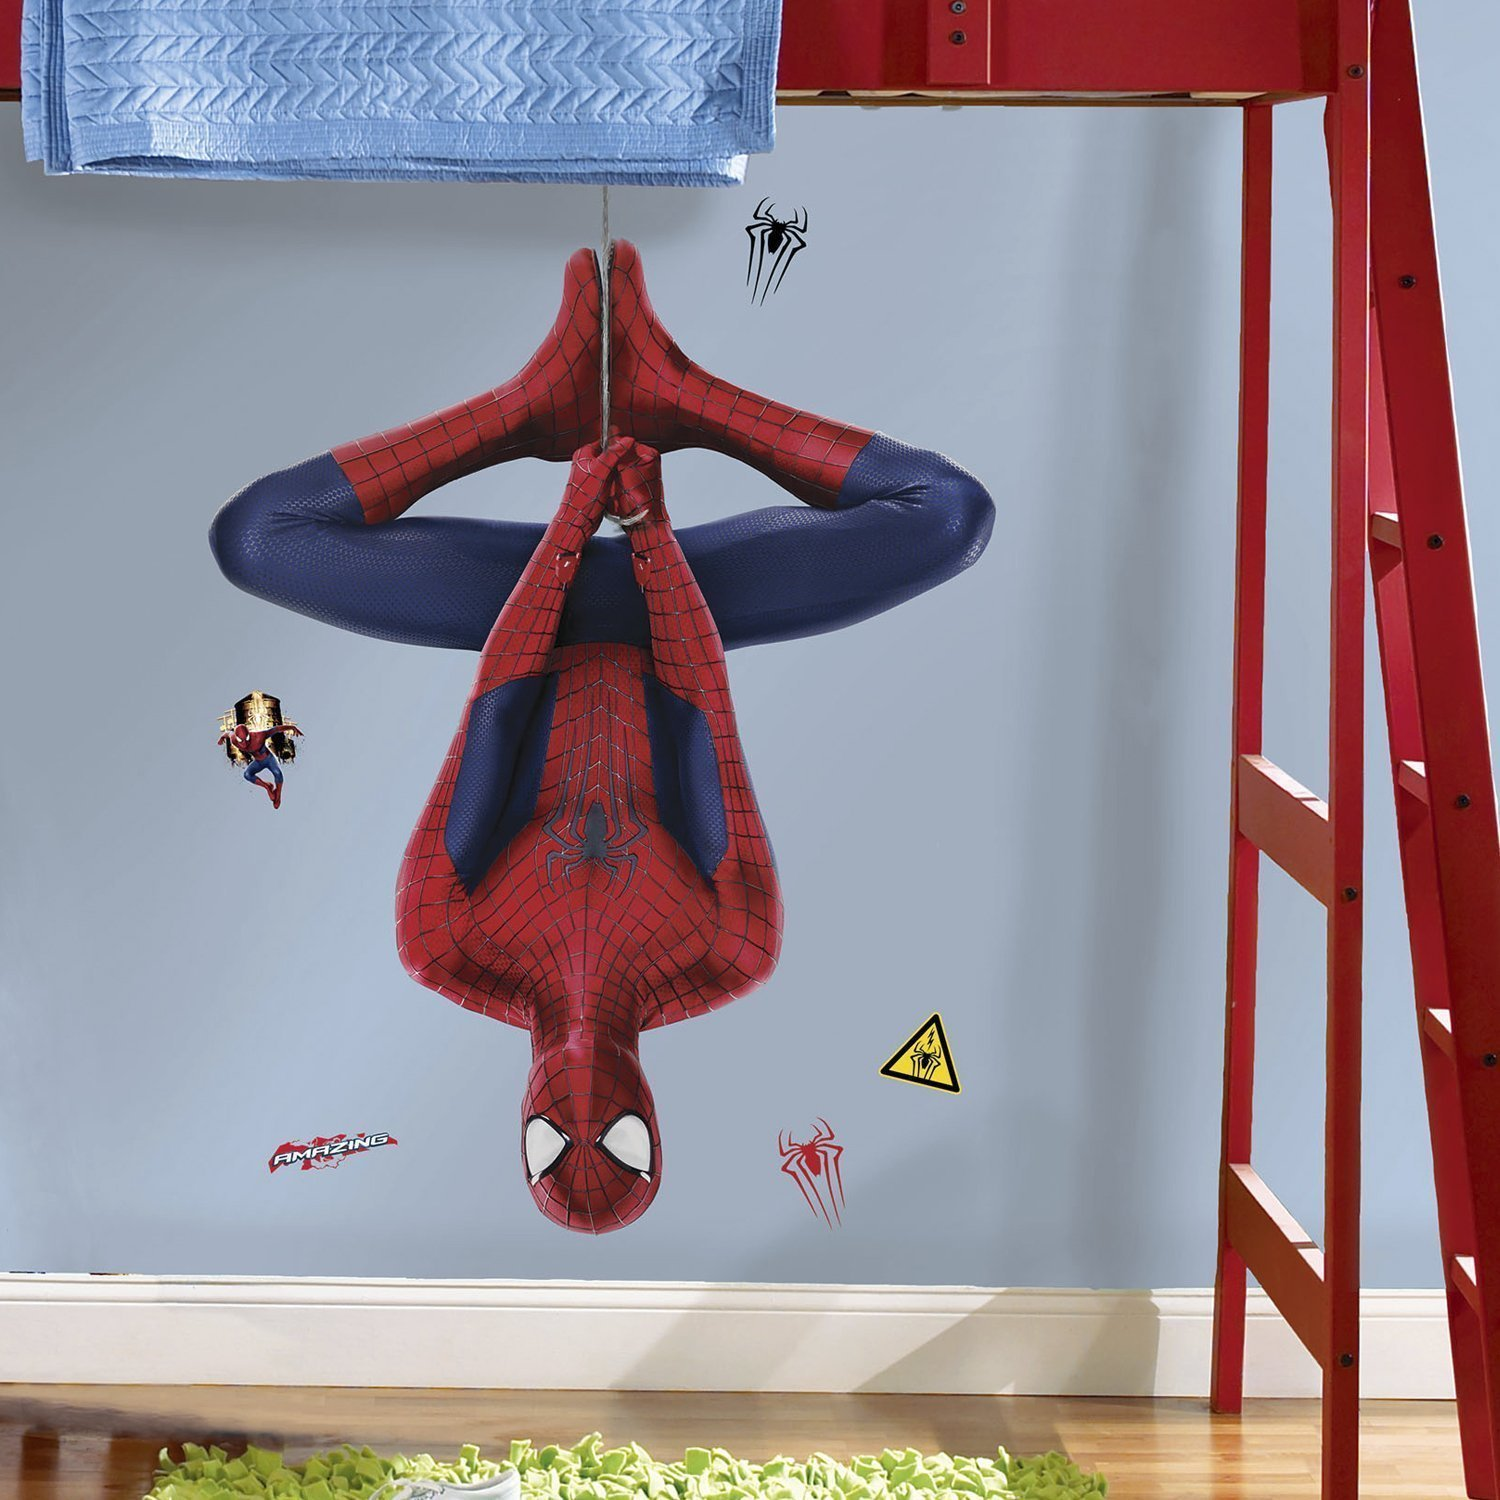 Marvel Superheroes Comic - The Avengers - The Amazing Spiderman Web Slinging Giant Wall Decal Sticker by Marvel Movies (Image #2)